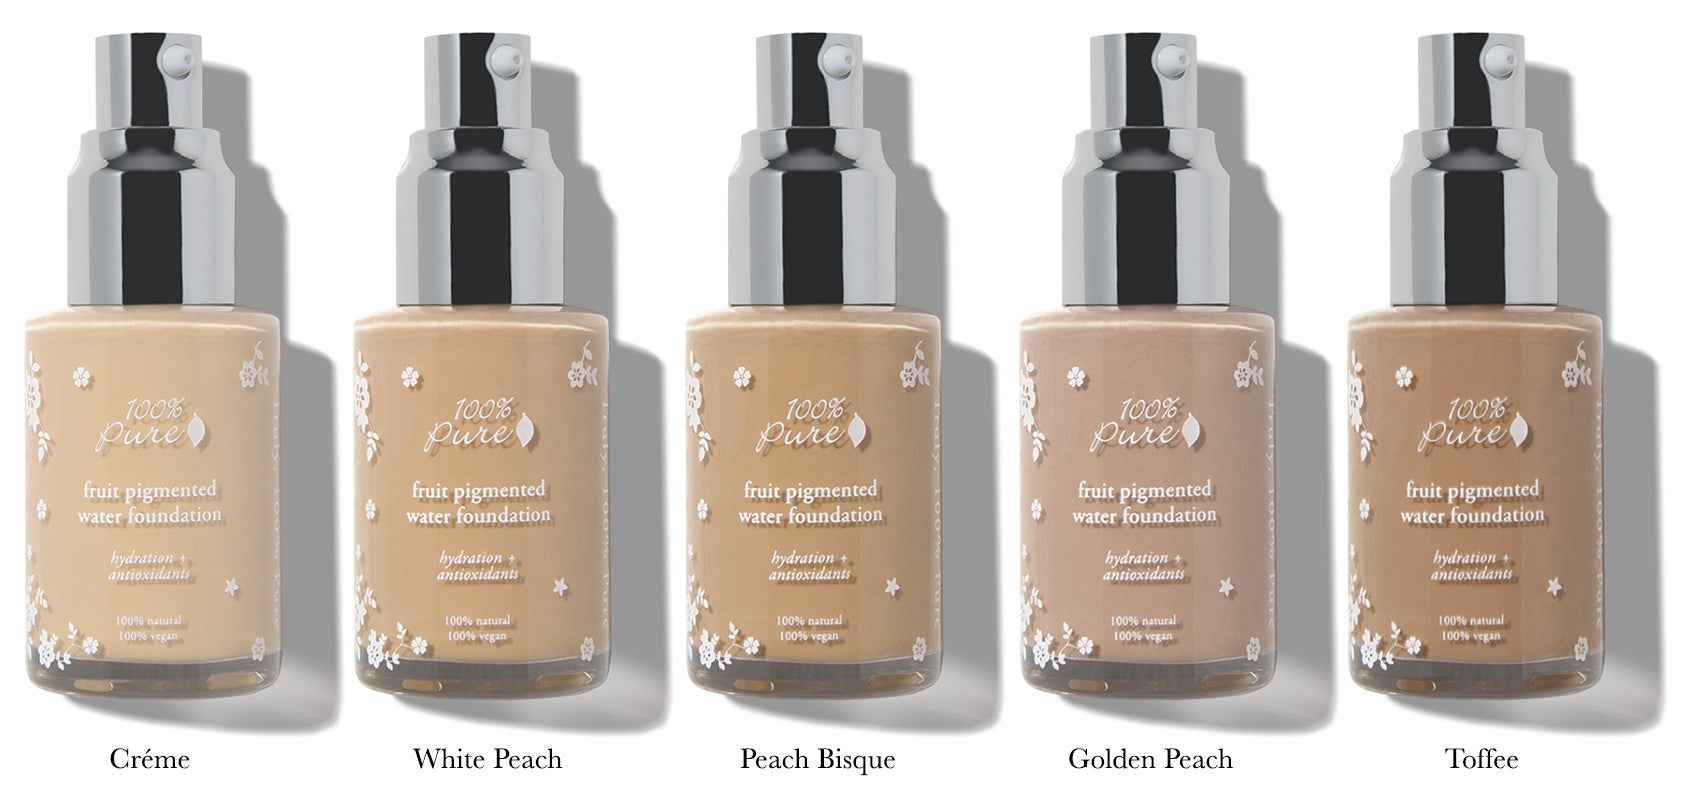 Fruit Pigmented Water Foundations